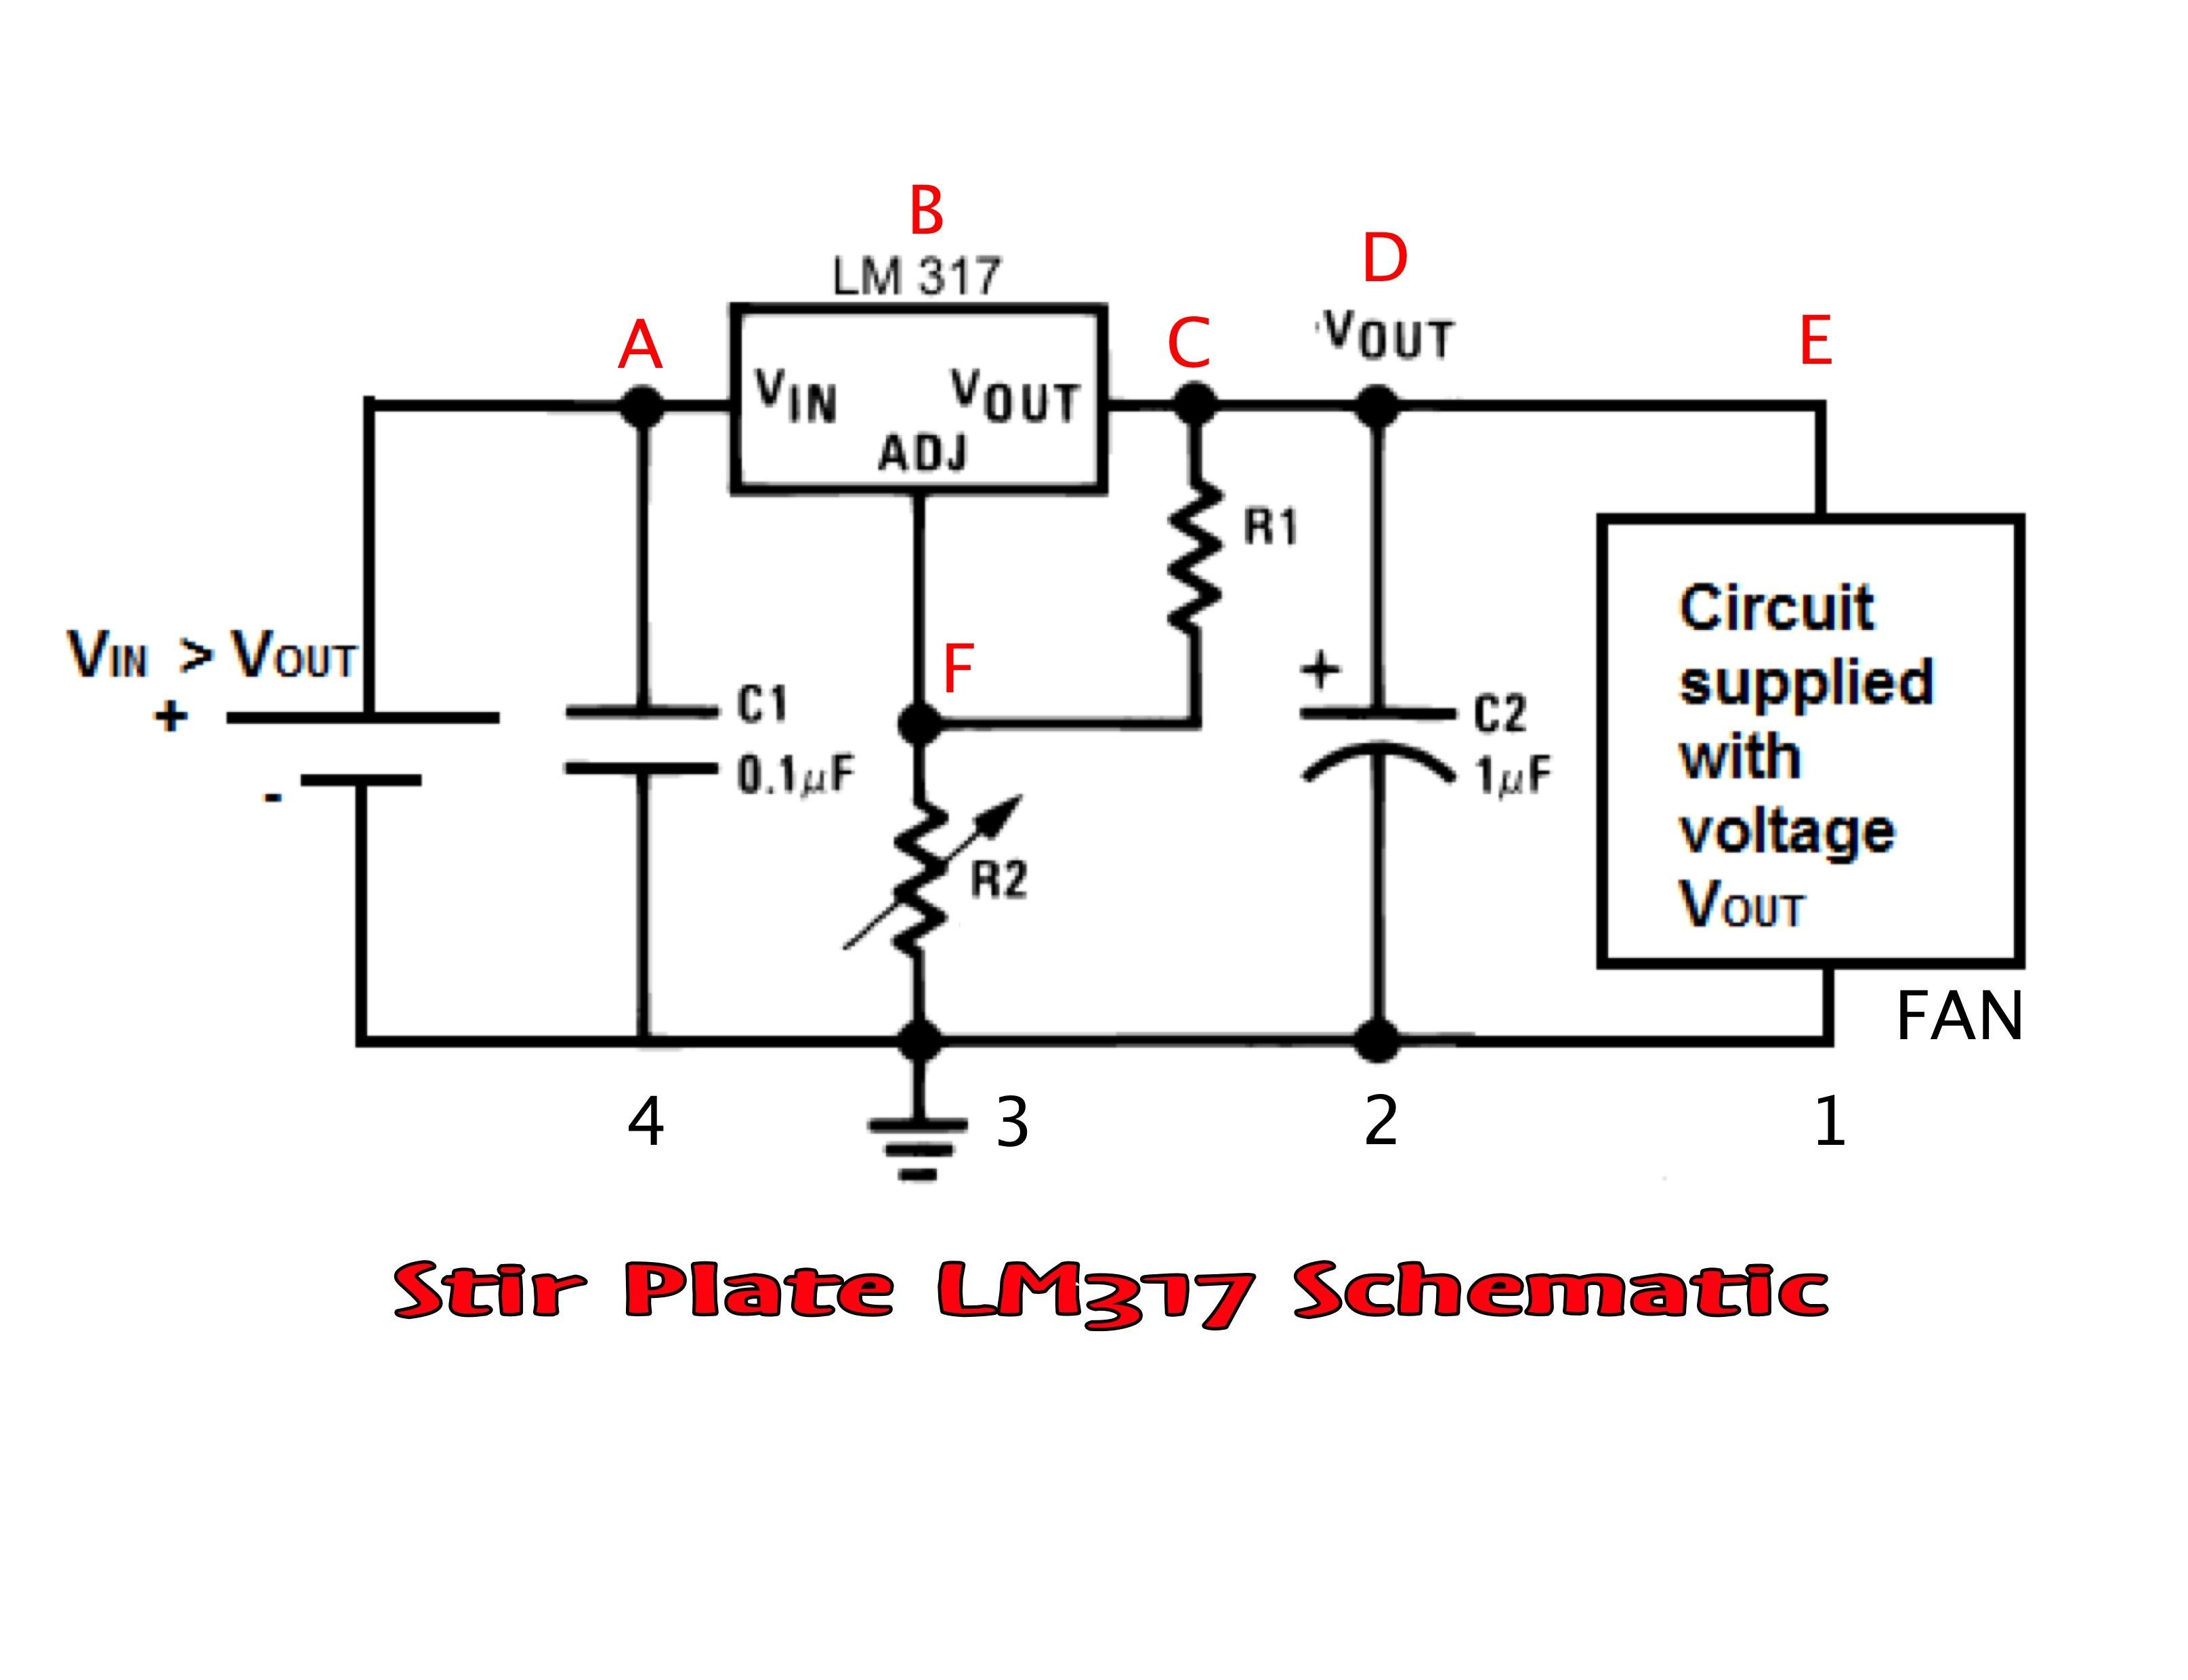 New How To Read Circuit Diagrams Diagram Wiringdiagram